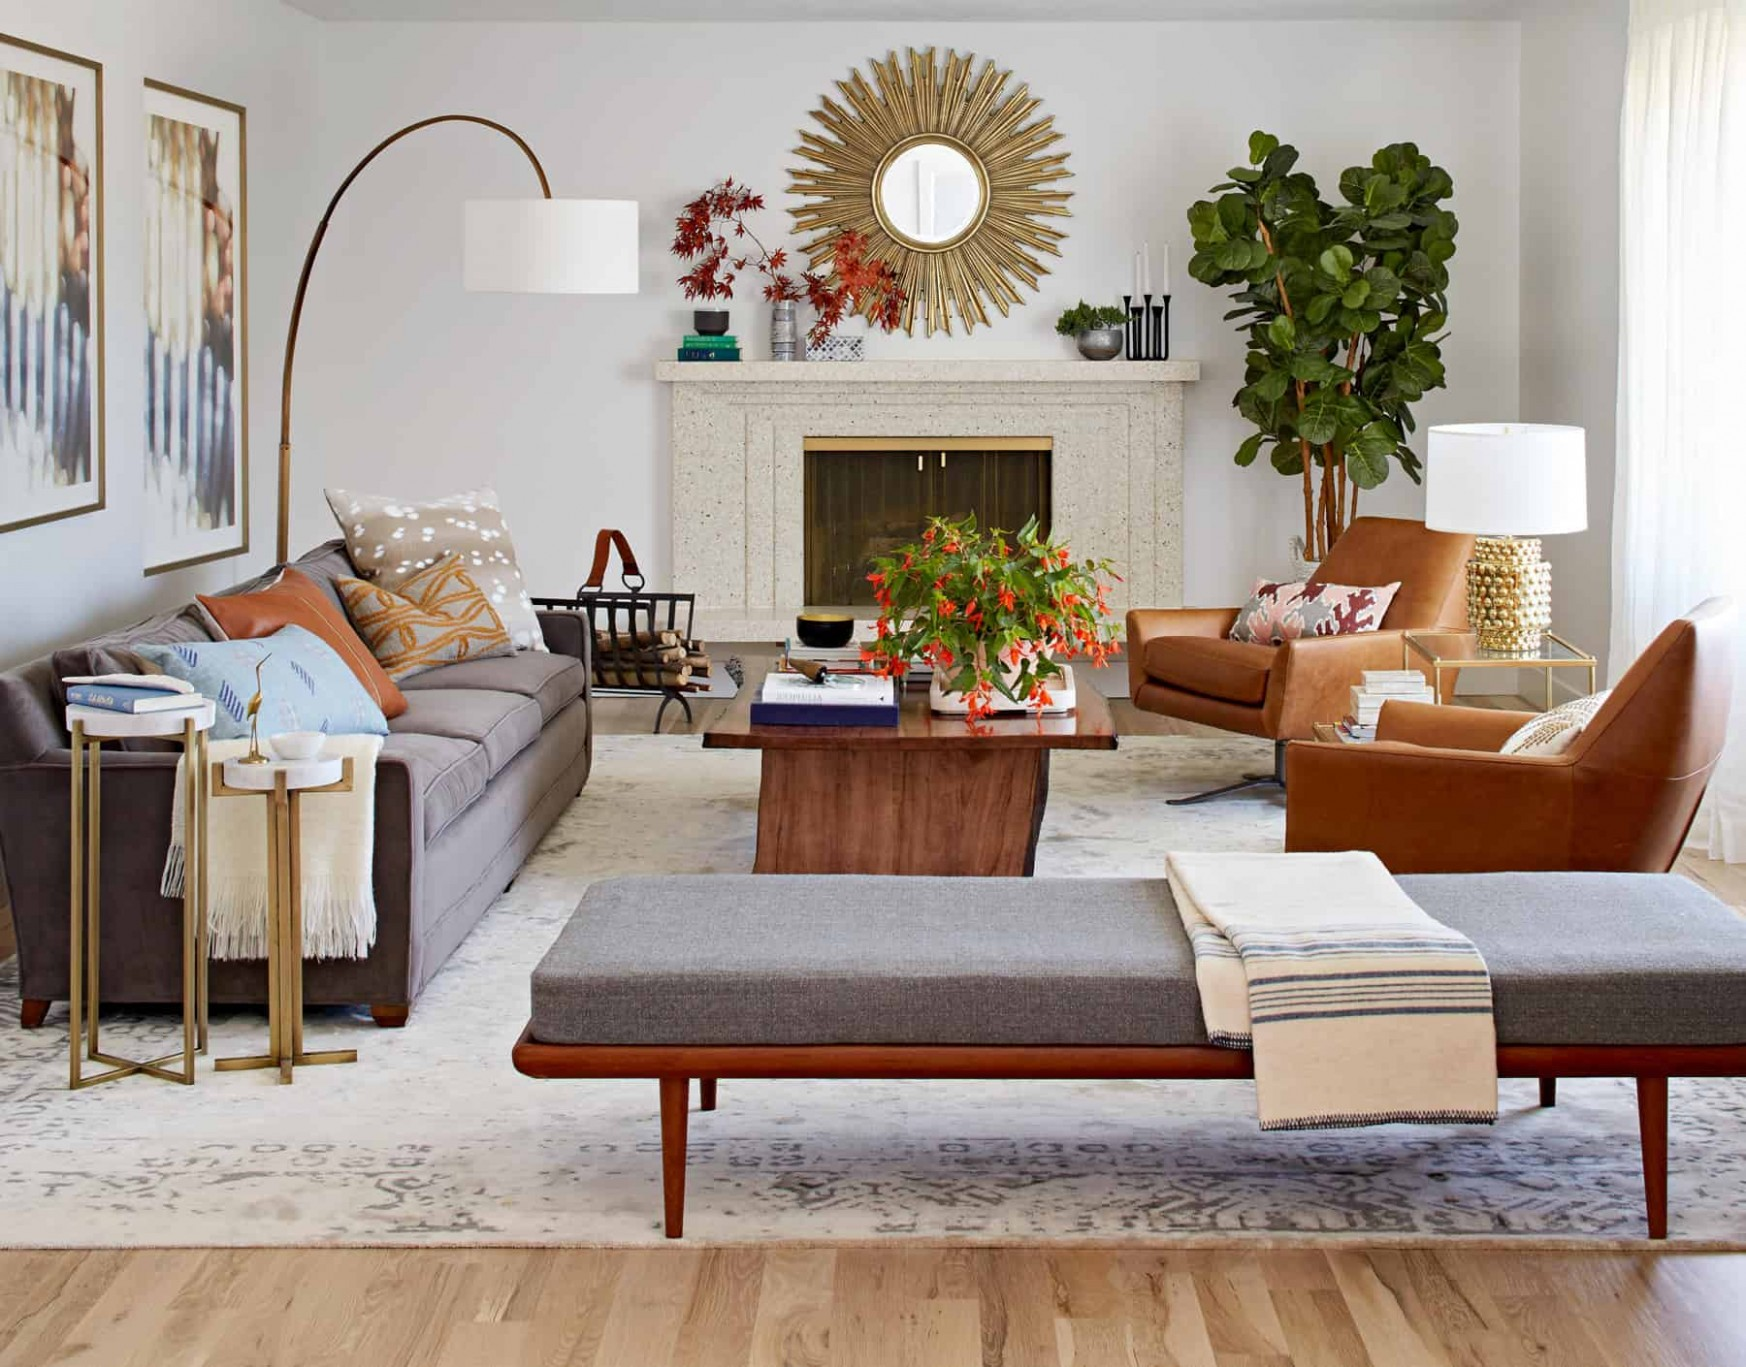 Living Room Trends 11: 11 Fresh and Unique Ideas To Try In 11 - Apartment Design Trends 2021